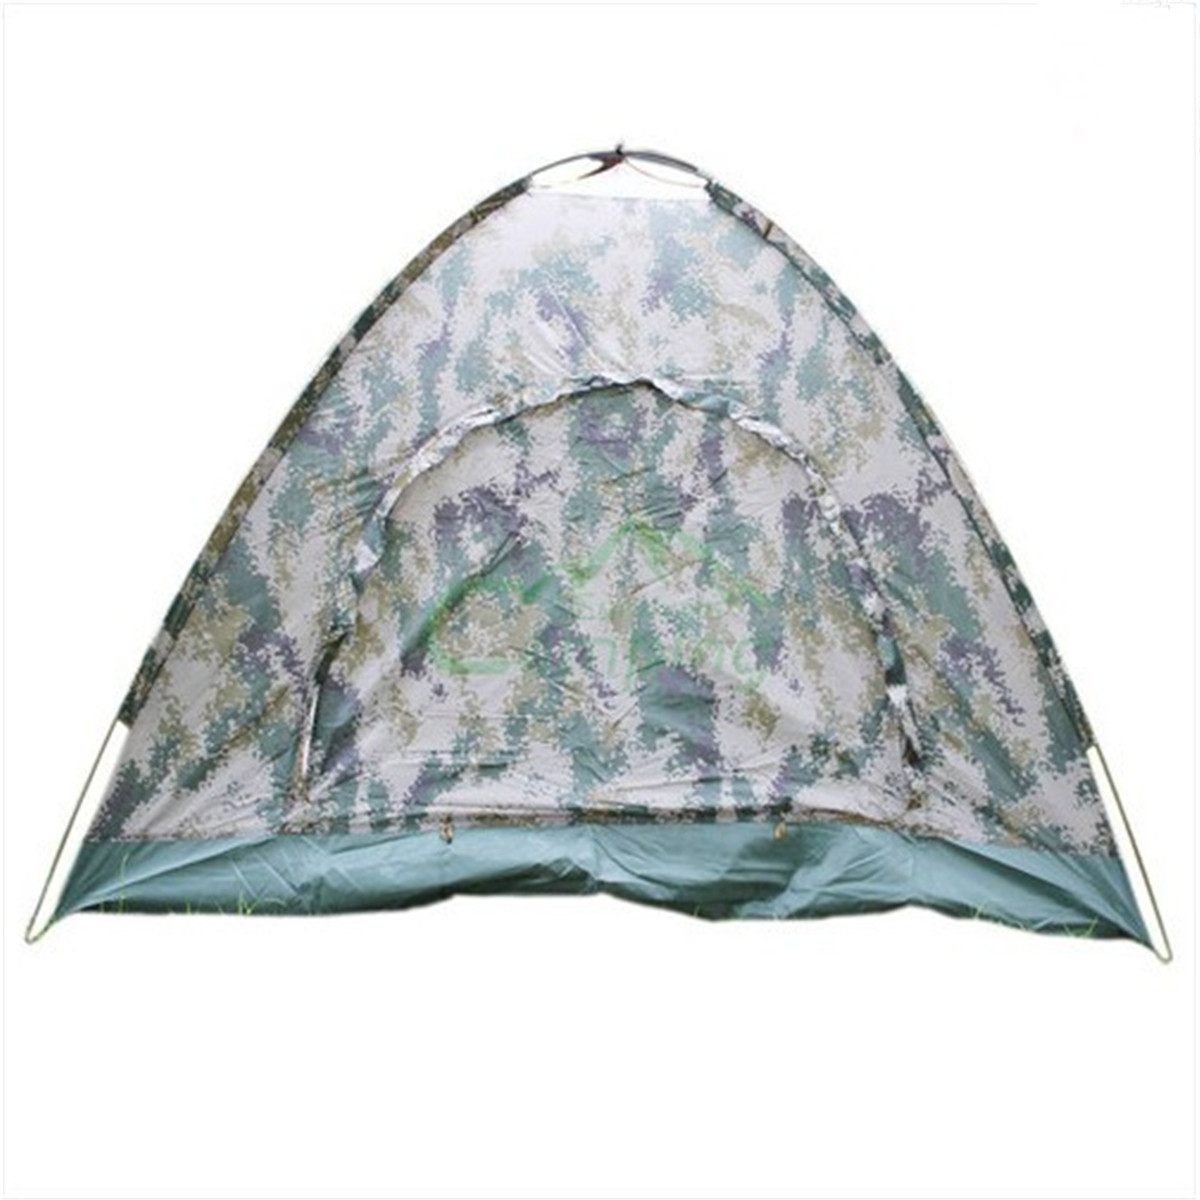 Outdoor Oxford Cloth Camping hiking Mountaineering Waterproof  Folding Tent for 4 person four season universal Camouflage<br>